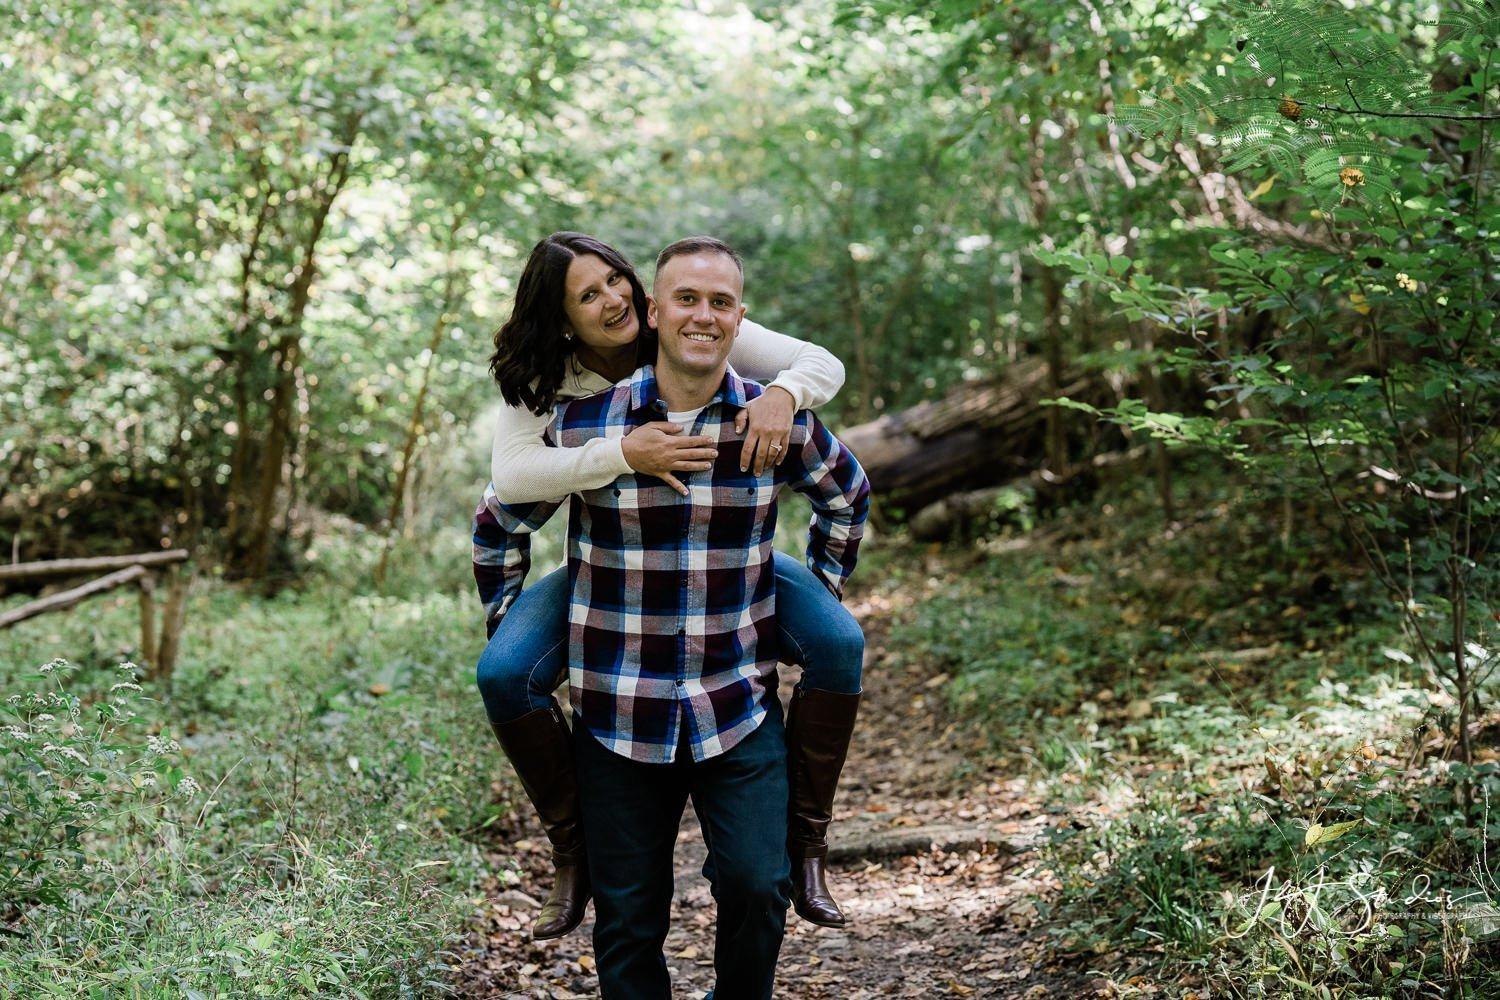 groom gives bride piggyback Wissahickon Park Engagement